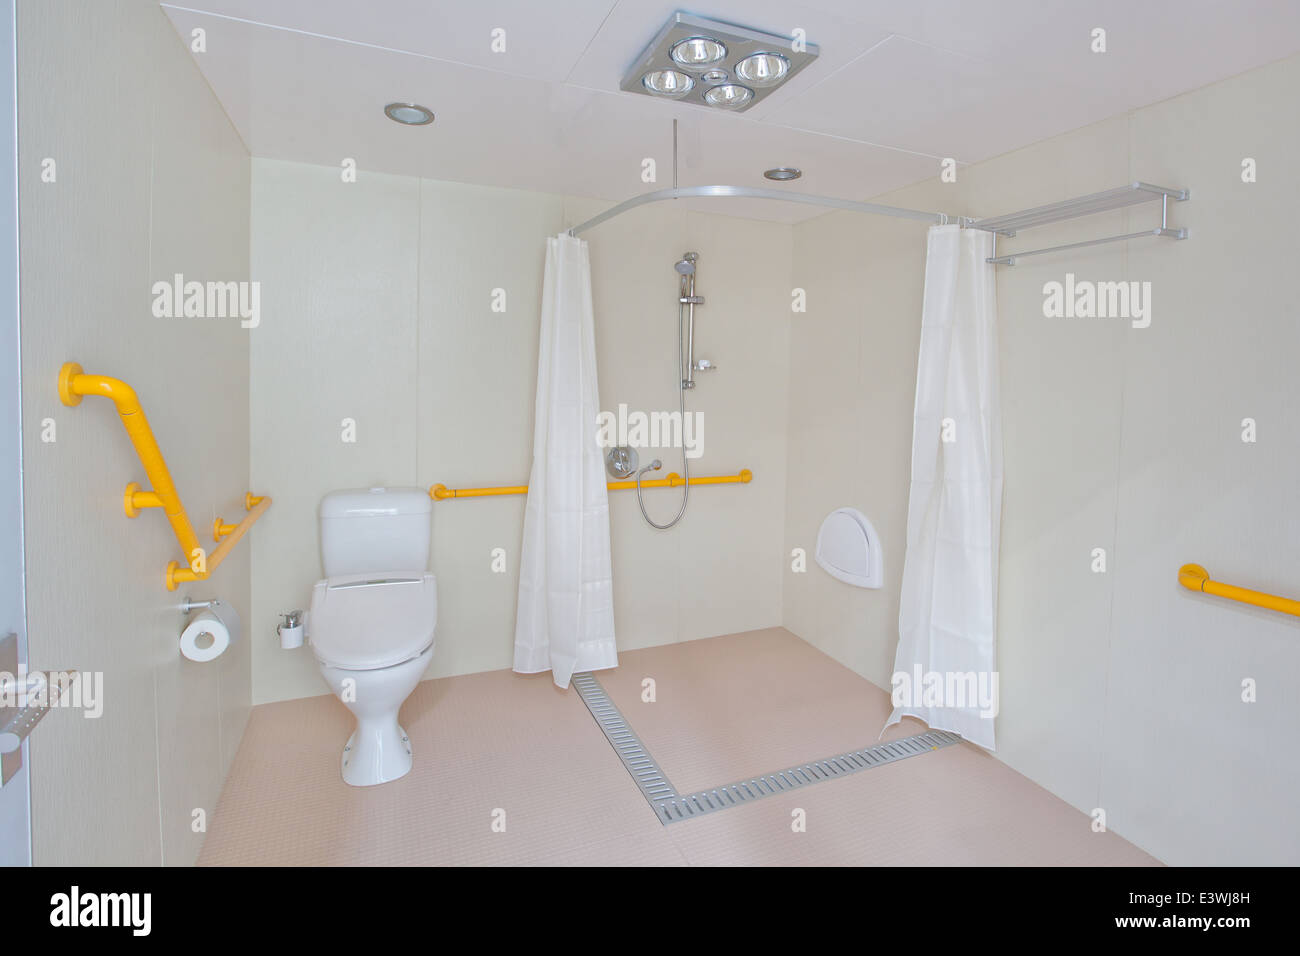 disabled clean compact modern bathroom new commercial. including ...